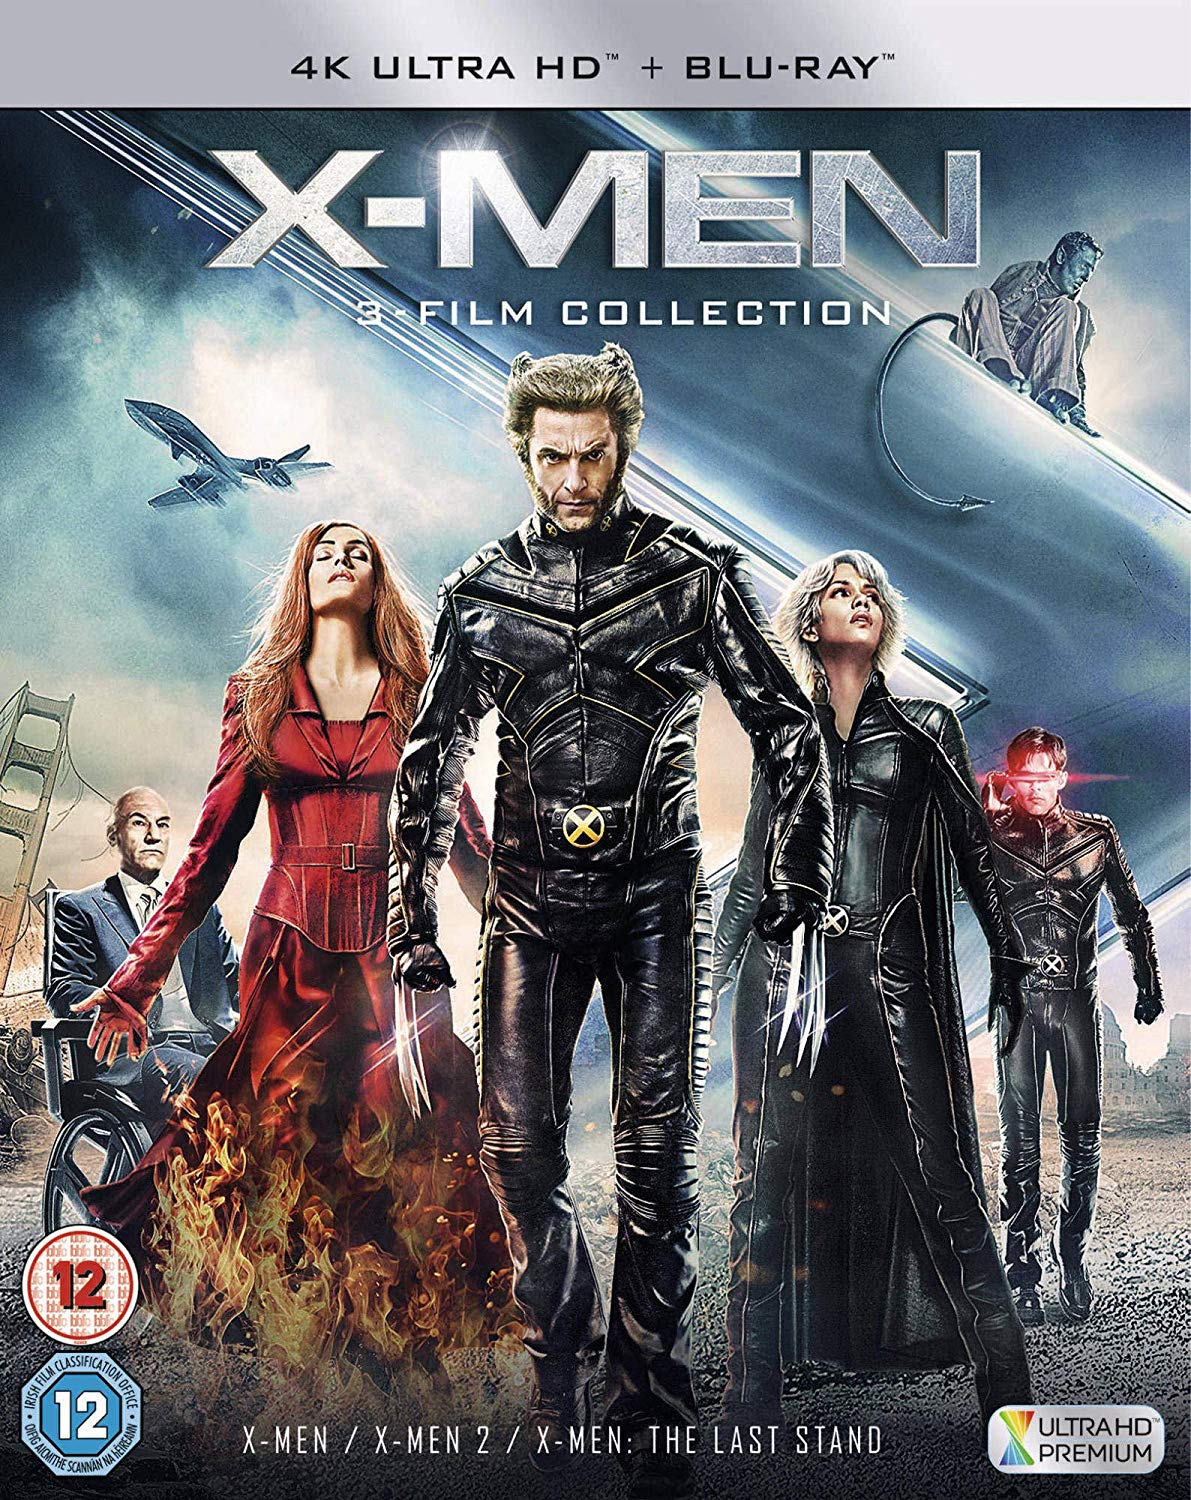 Win X-Men 3-Film Collection on 4K Blu-ray - Movies Games and